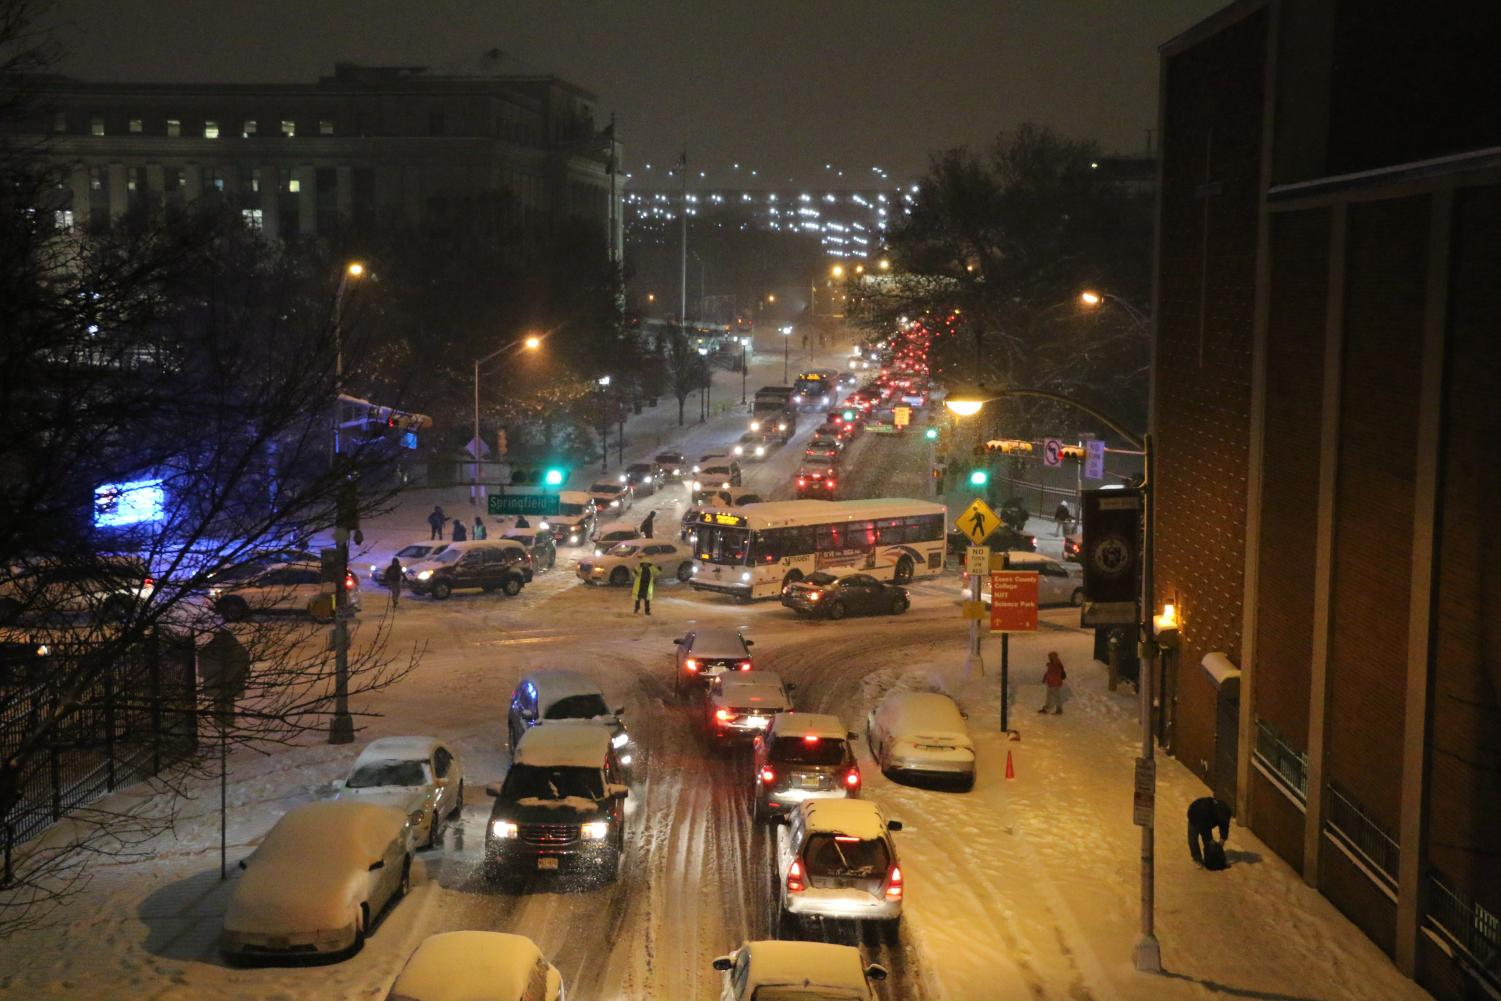 A powerful snowstorm at rush hour paralyzed Newark, leaving drivers, commuters, and students stranded.